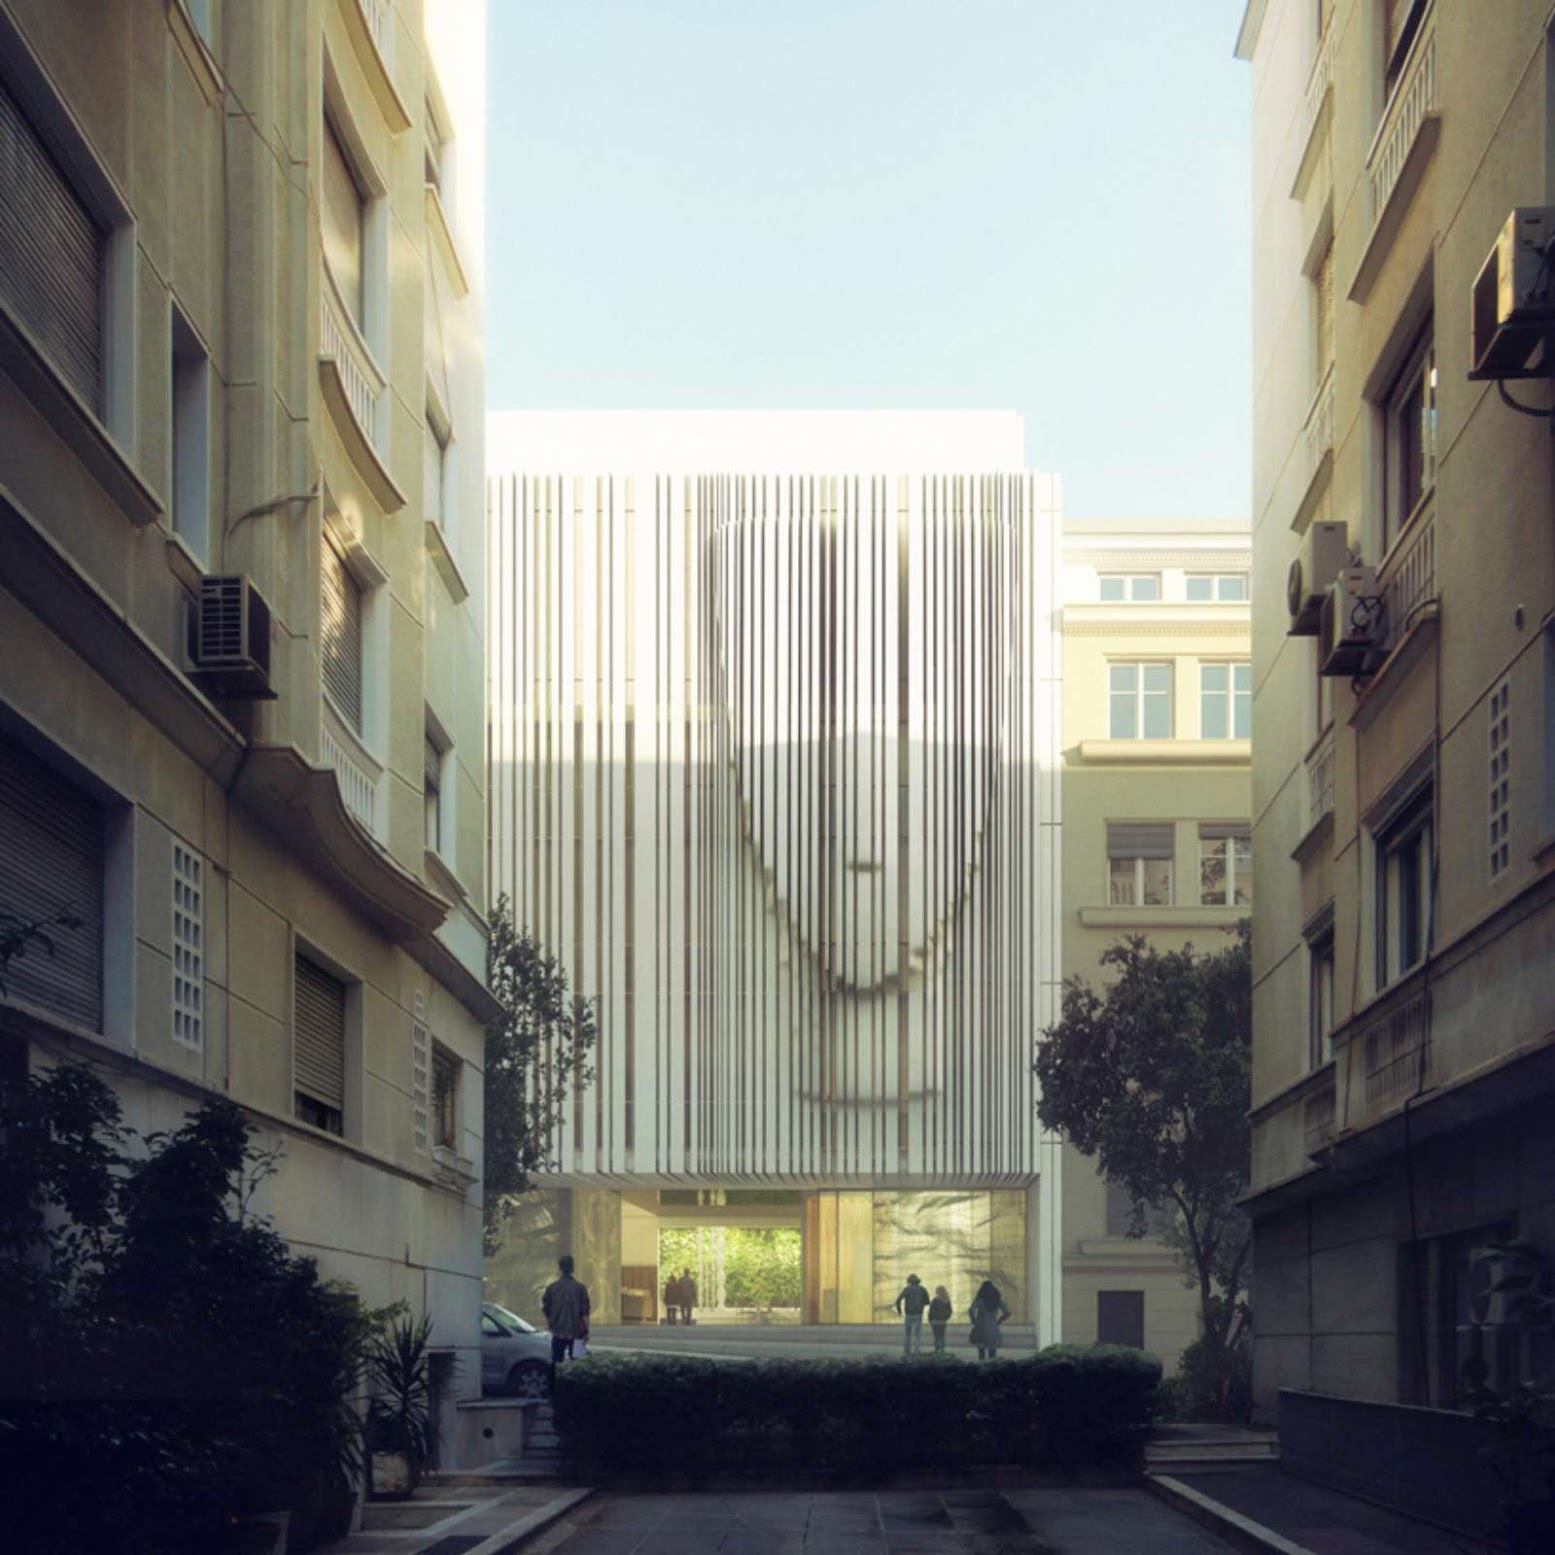 Museum of Cycladic Art by Kois associated architects